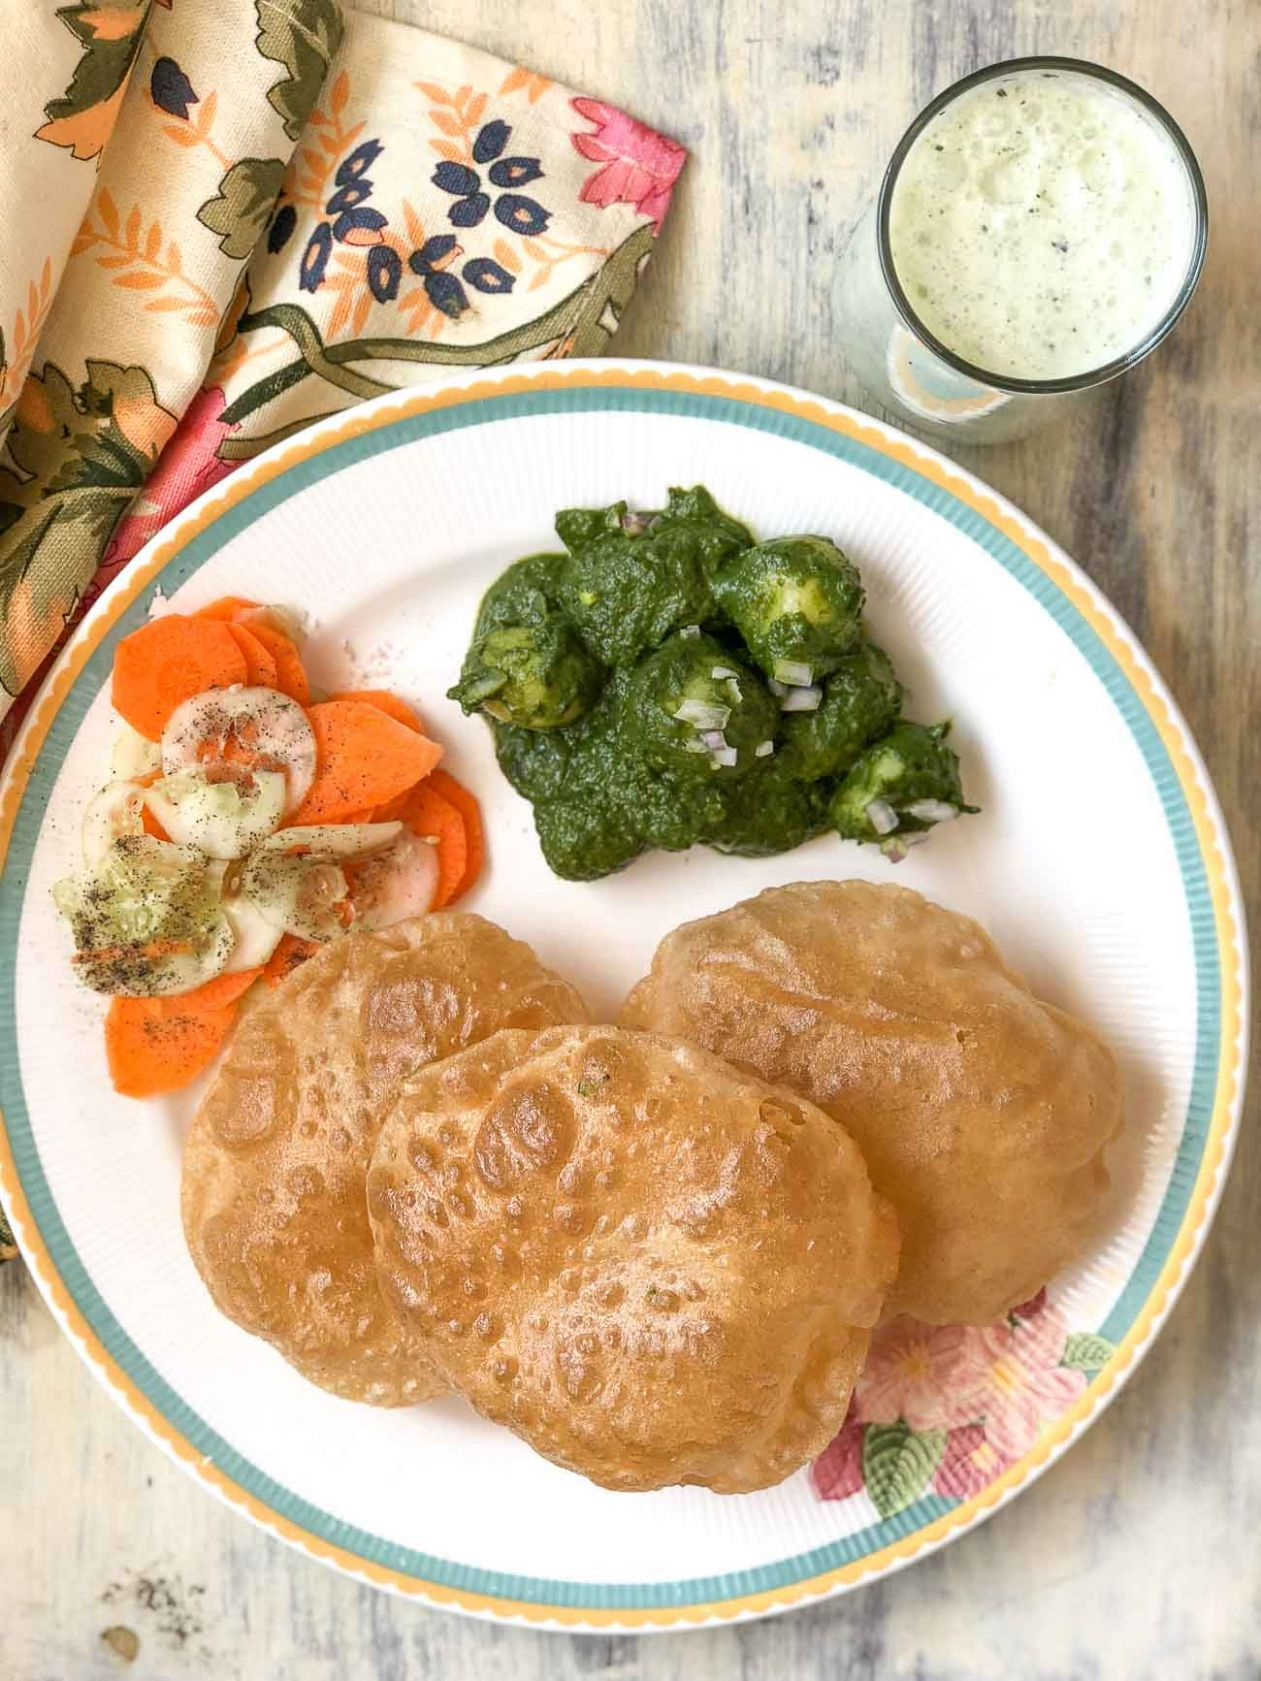 Looking To Make A North Indian Dinner? Try The Hariyali Aloo, Puri ...